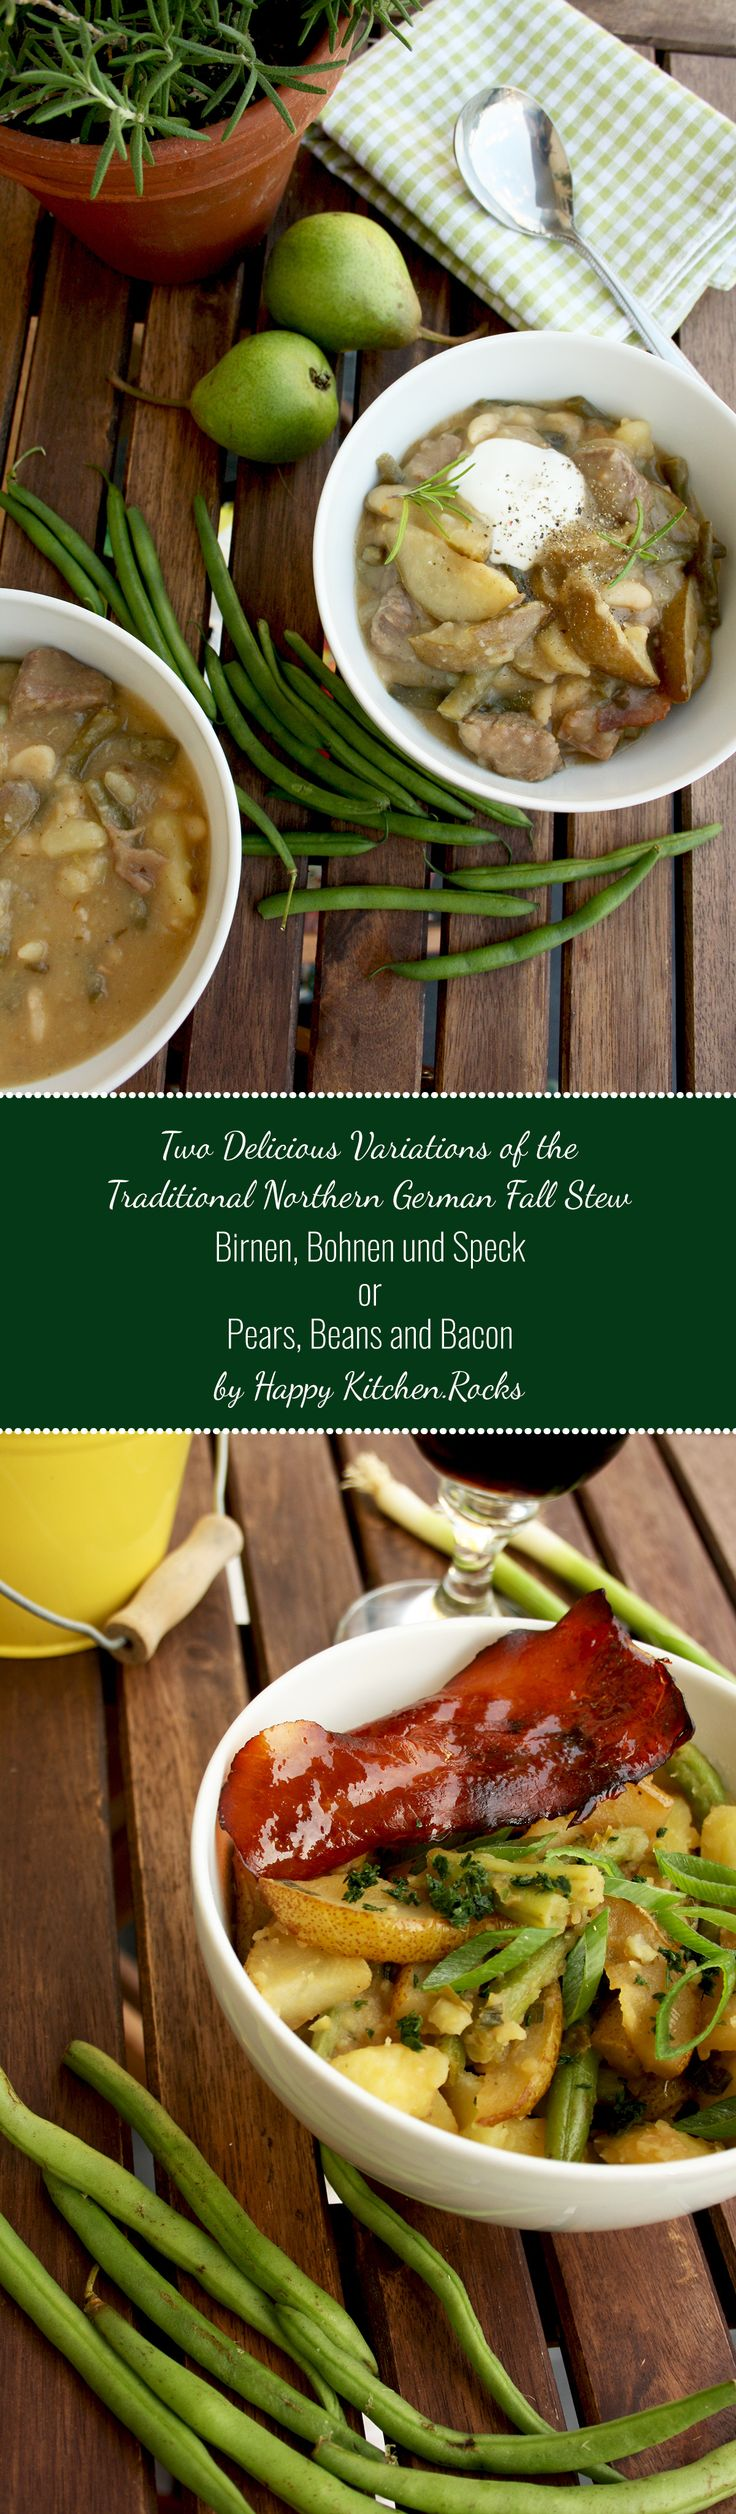 Birnen, Bohnen und Speck or Pears, Beans and Bacon - an adopted version of a perfect autumn and winter comfort meal from Northern Germany. Low-caloric, nutritious, paleo, low carb and easy to make.